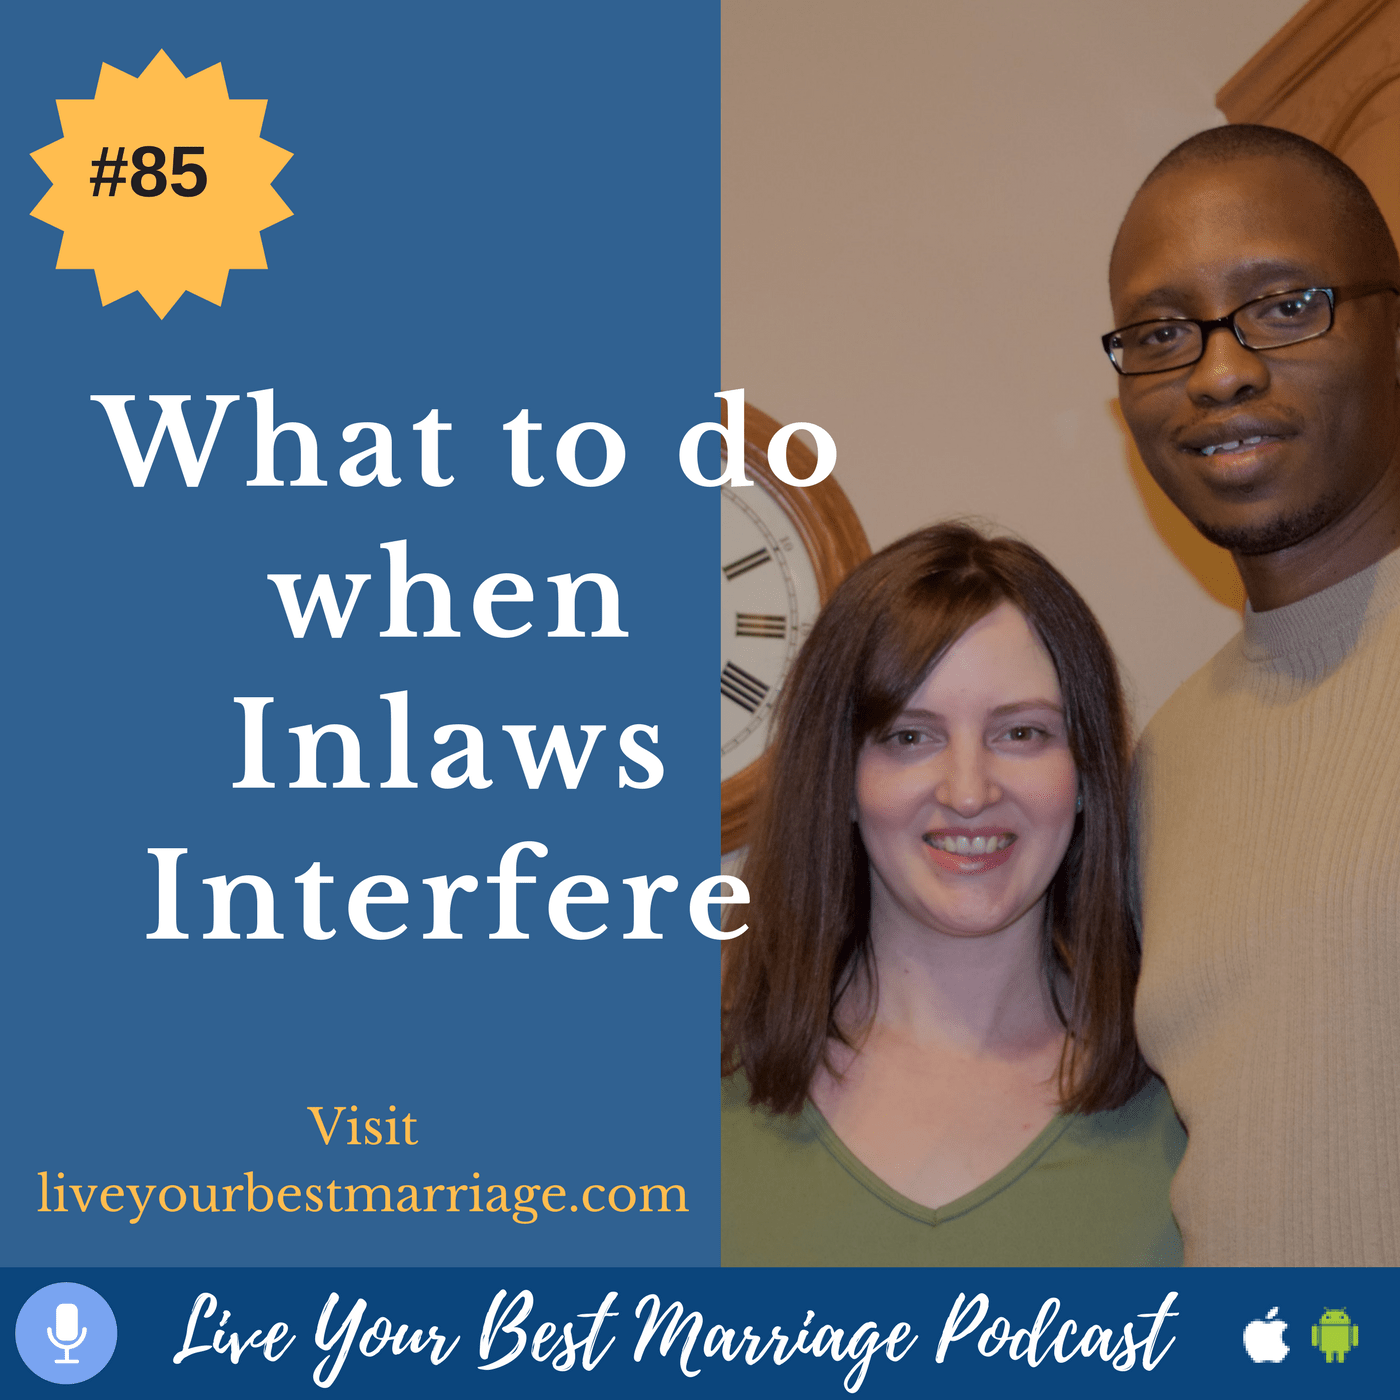 episode-85-what-to-do-when-inlaws-interfere-audio_thumbnail.png